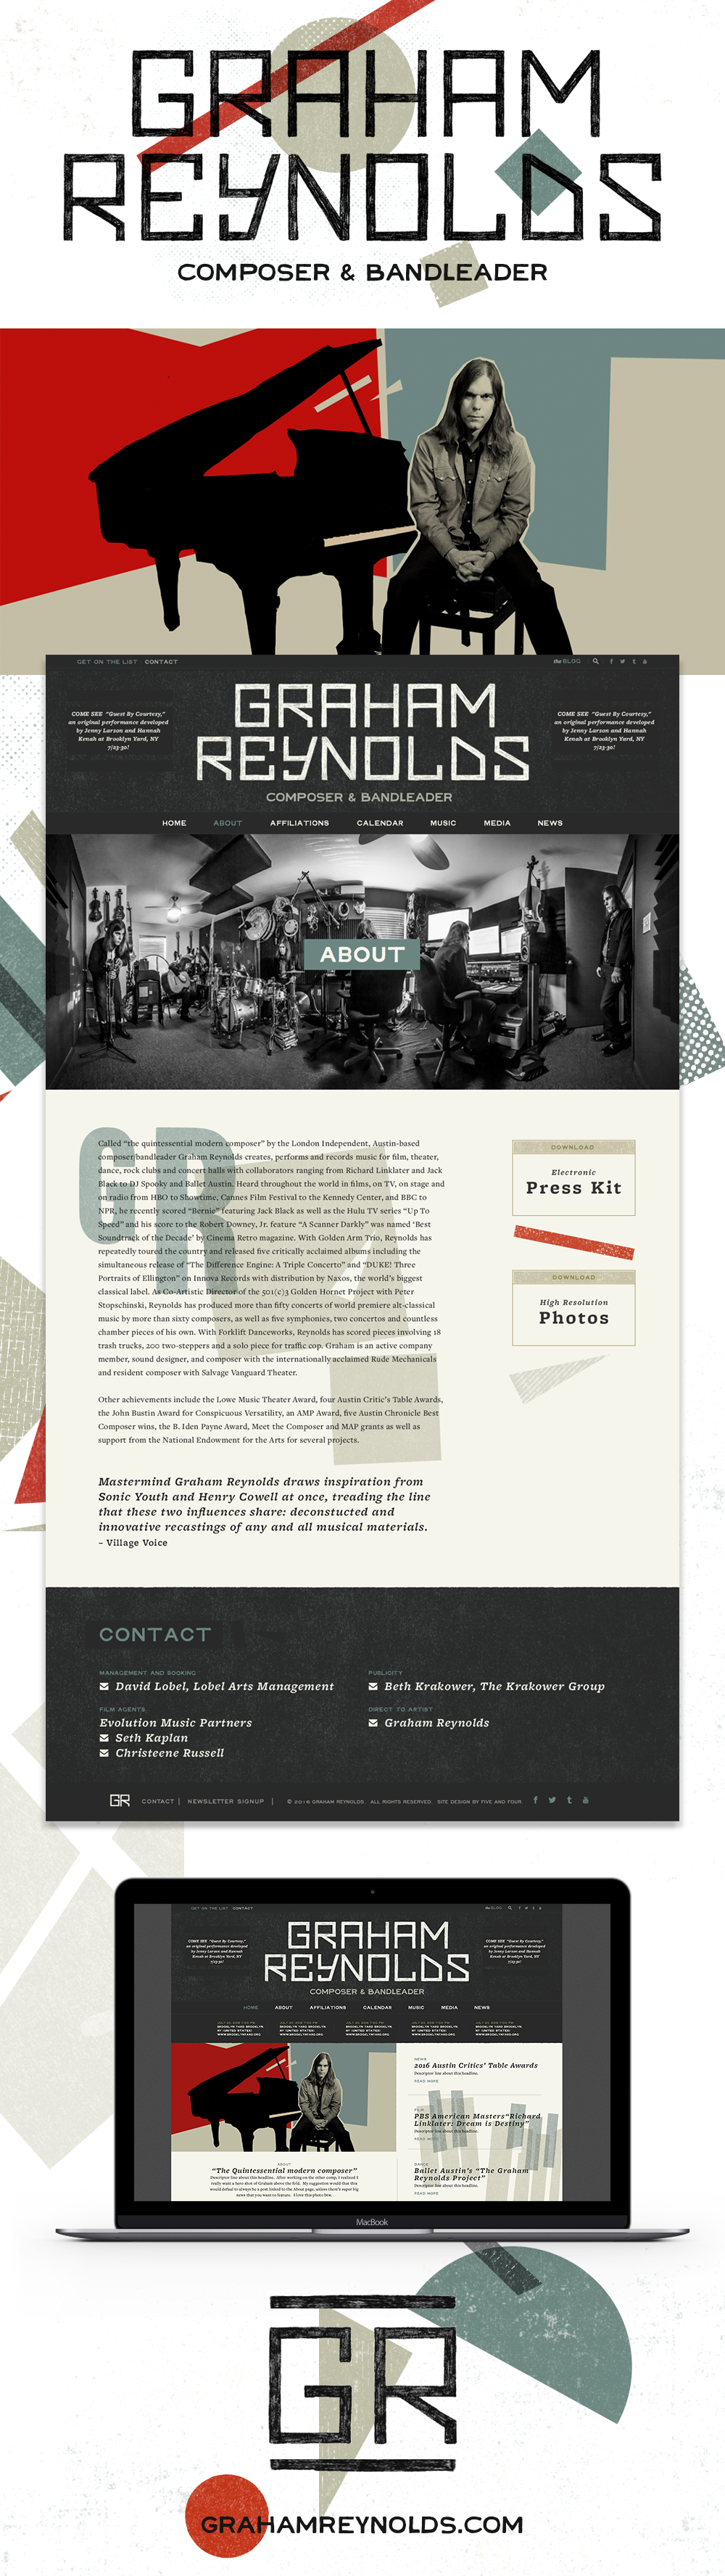 Website for Graham Reynolds designed by Five and Four